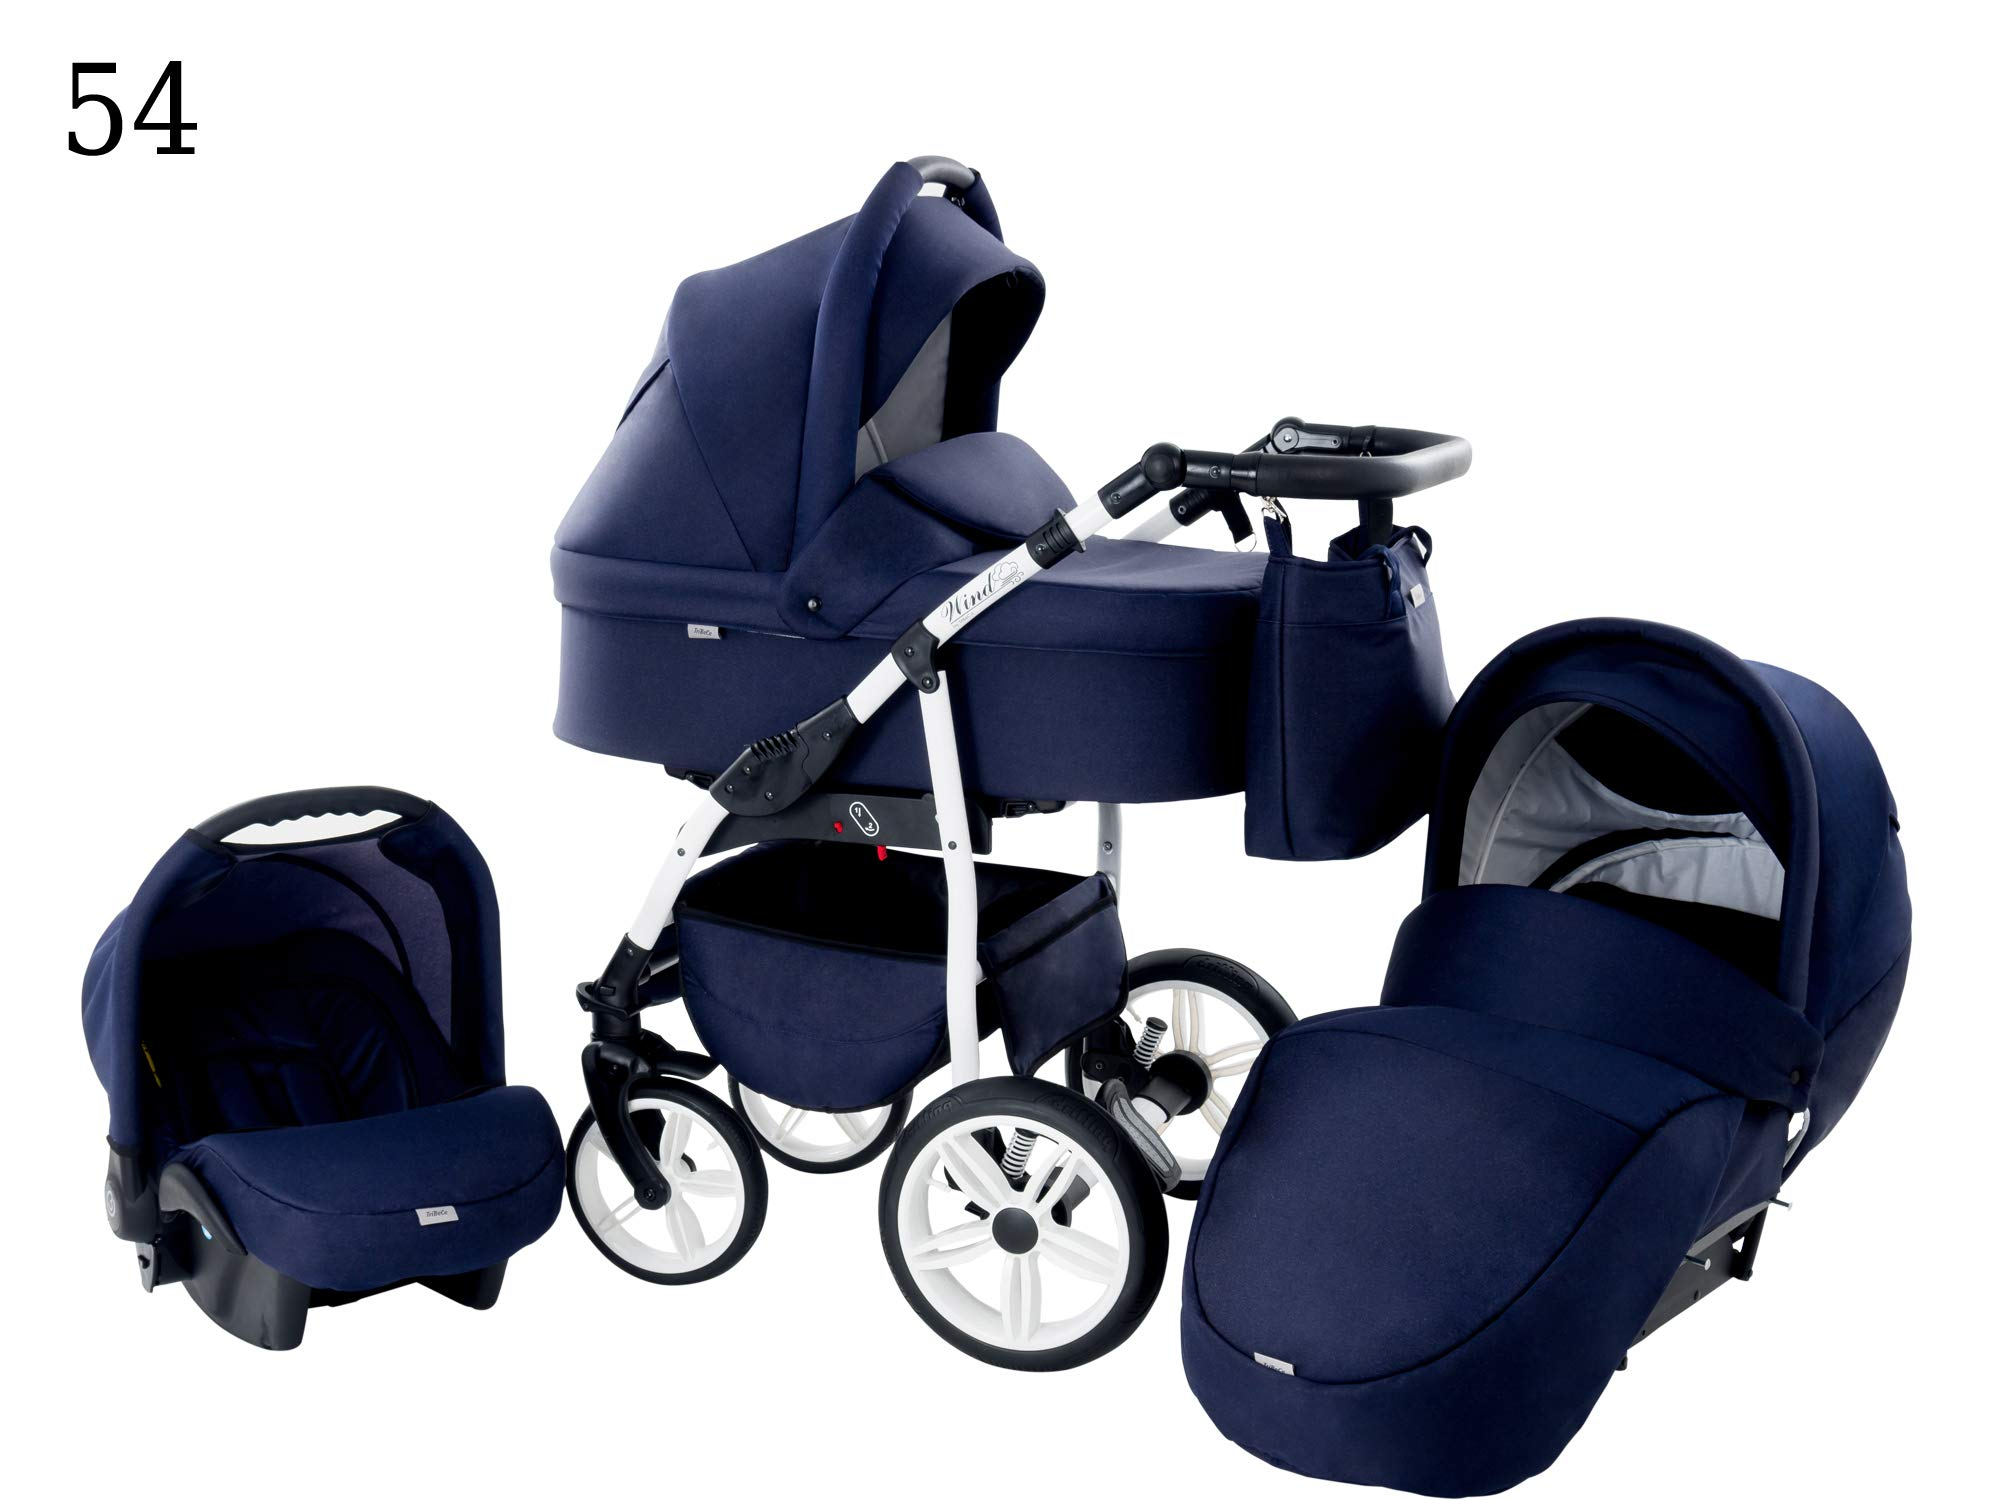 Baby Pram Zeo Wind 3in1 Set - All You Need! carrycot Gondola Buggy Sport Part Pushchair car seat (54) Zeo 3 in 1 combination stroller complete set, with reversible seat units to the buggy, child car seat or baby carriage The baby carriage is suitable for babies from 0 months to 3 years (0-15 kg) Has 360 ° swiveling wheels, four-fold suspension, four-stage backrest, five-position adjustable footrest and a five-point safety belt 2